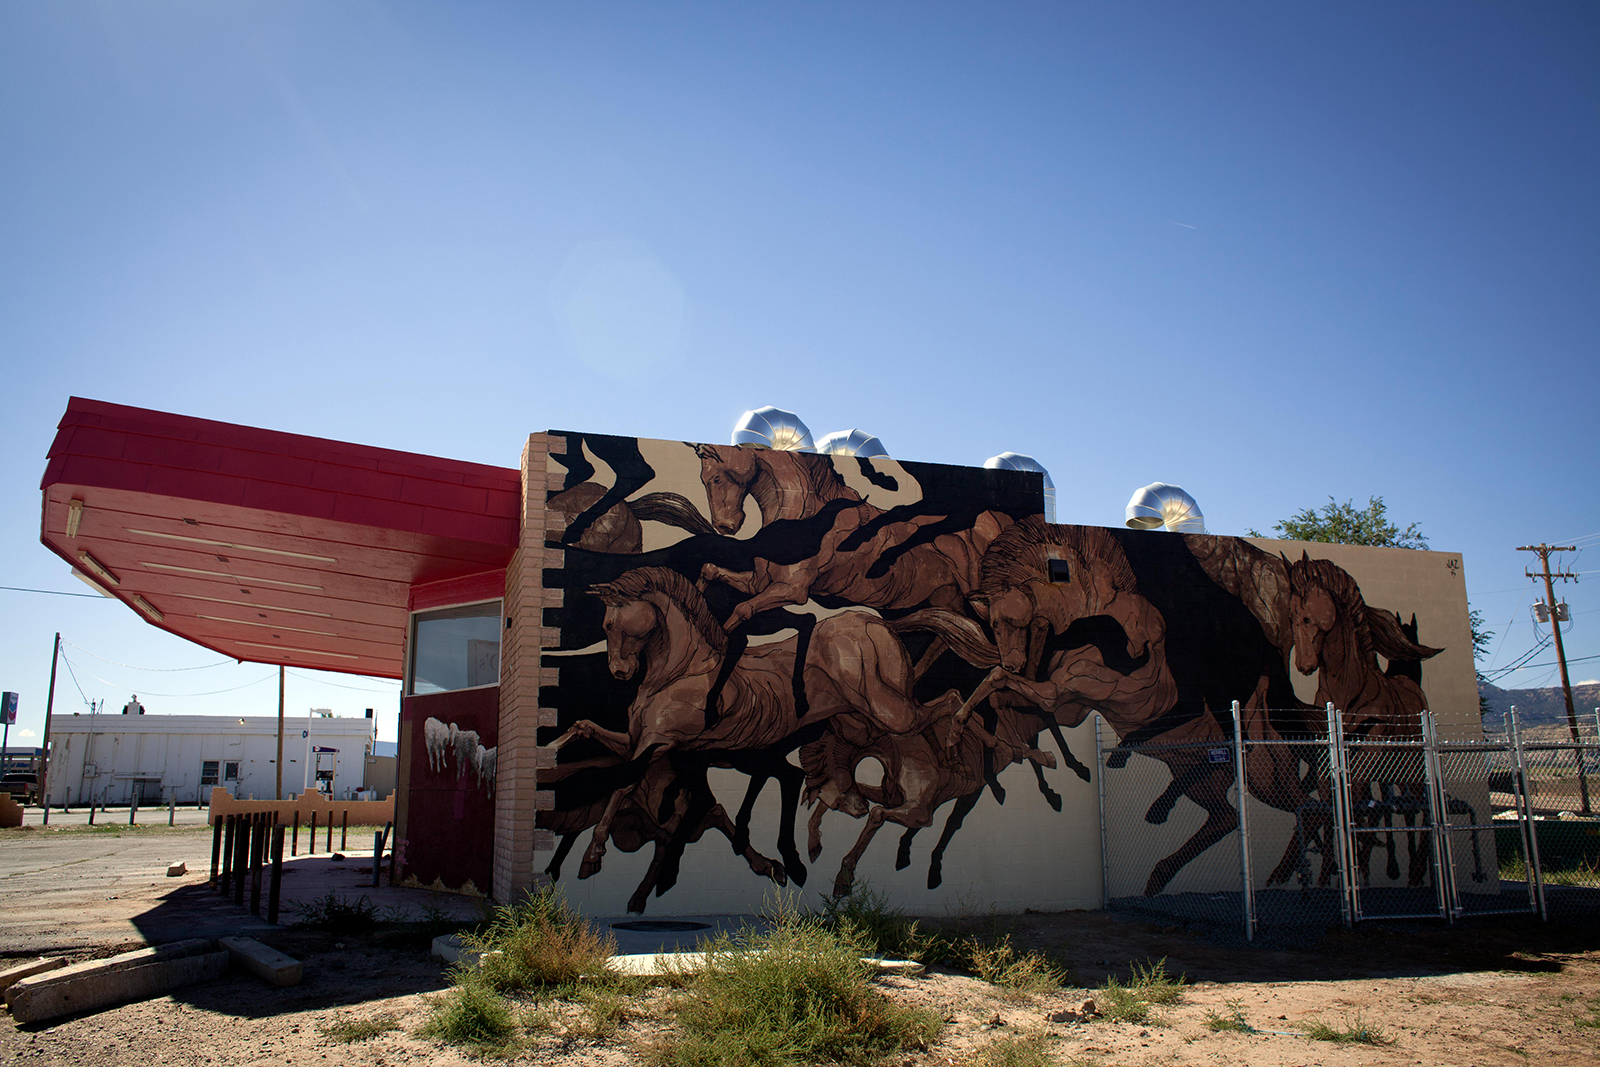 jaz-for-the-painted-desert-project-in-arizona-01